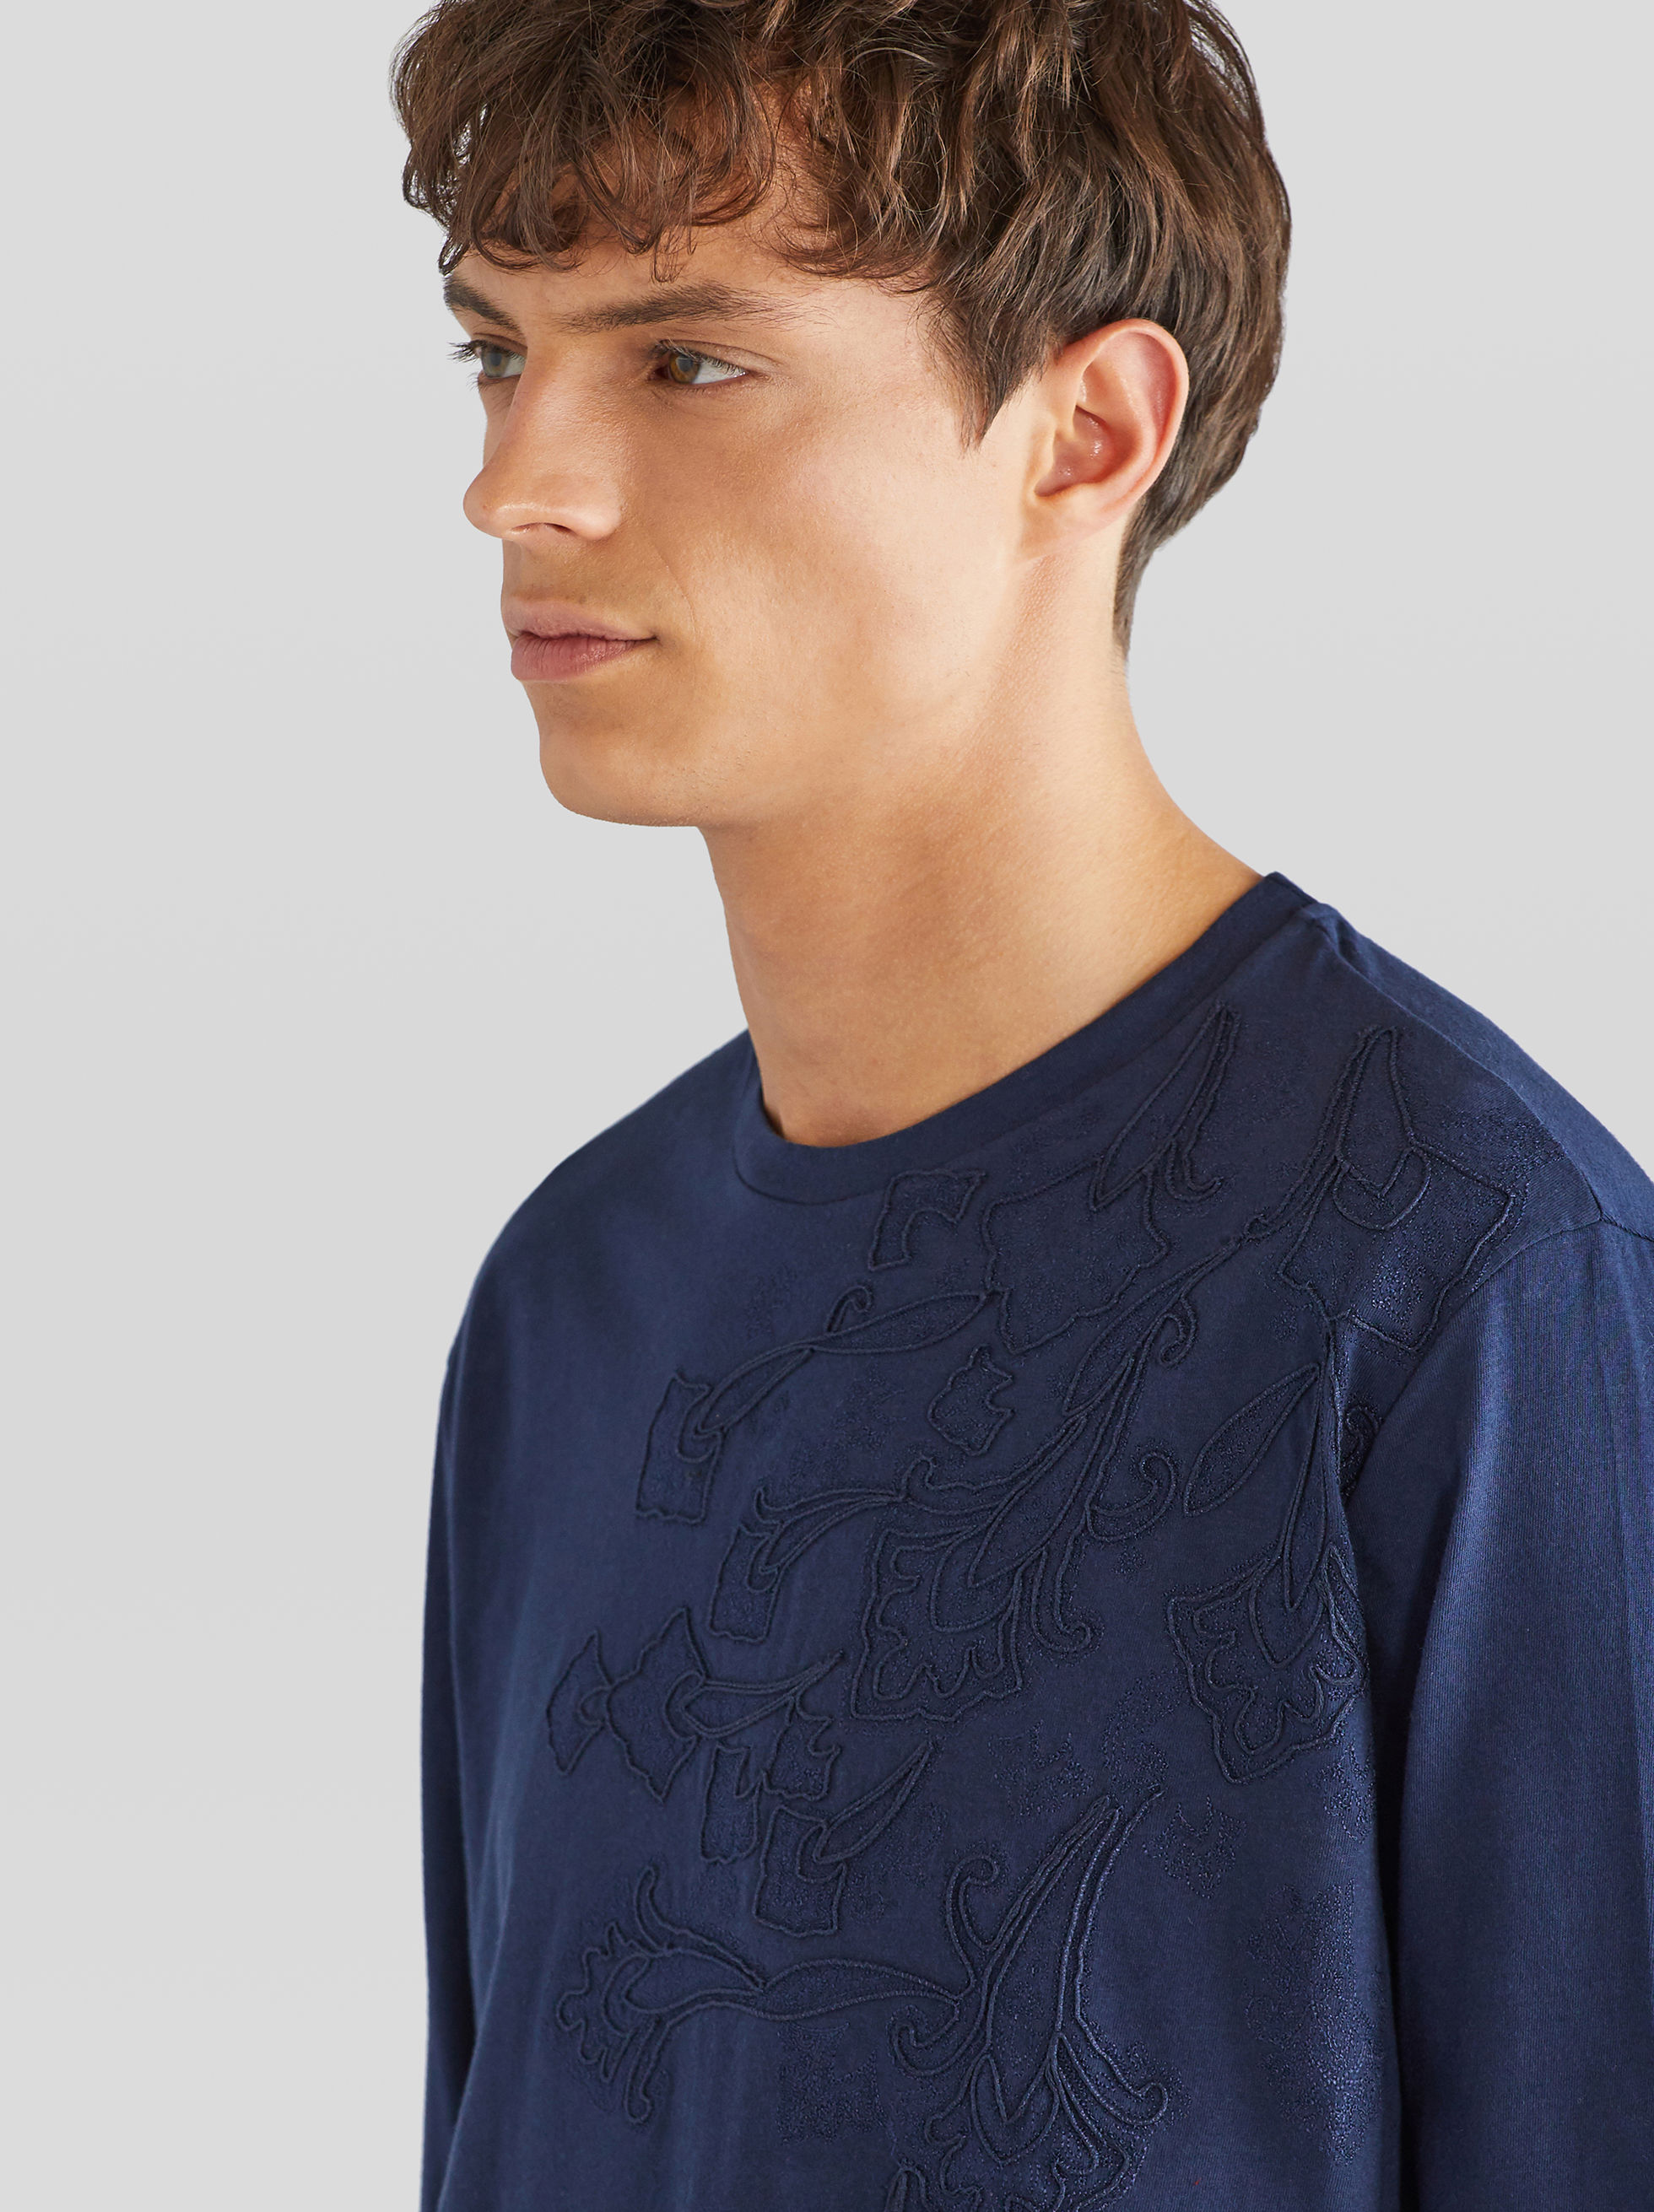 LONG-SLEEVED EMBROIDERED T-SHIRT